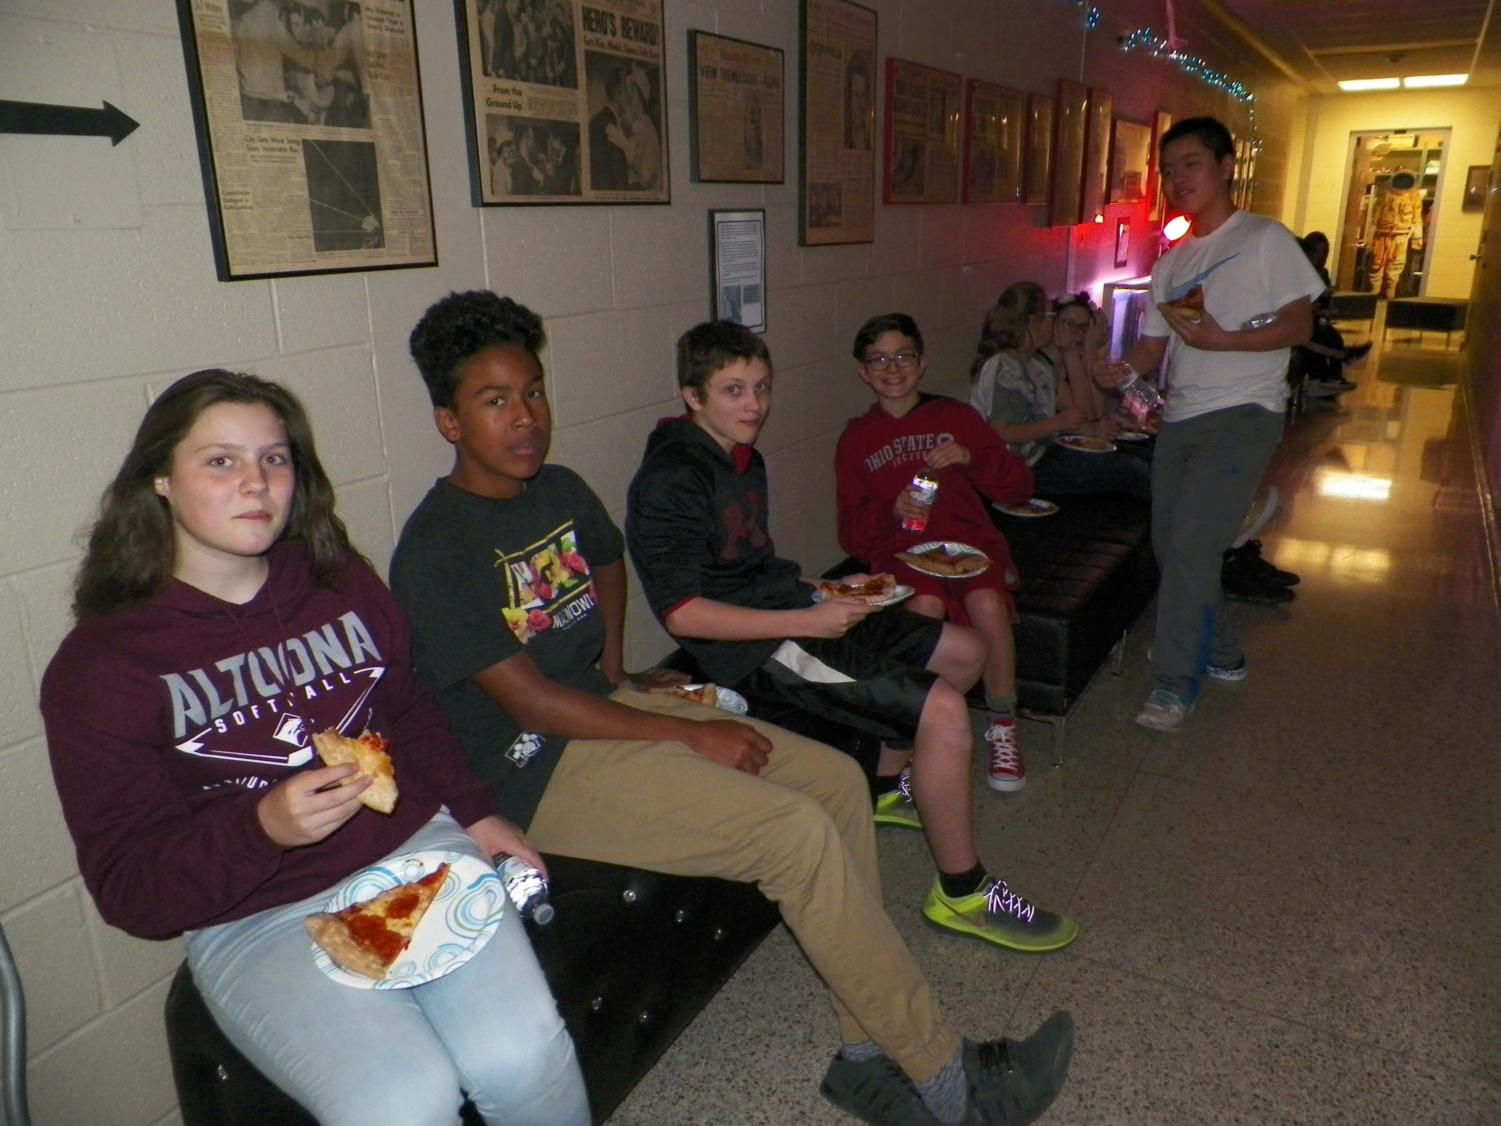 This was last year's pizza party for the students who were involved in